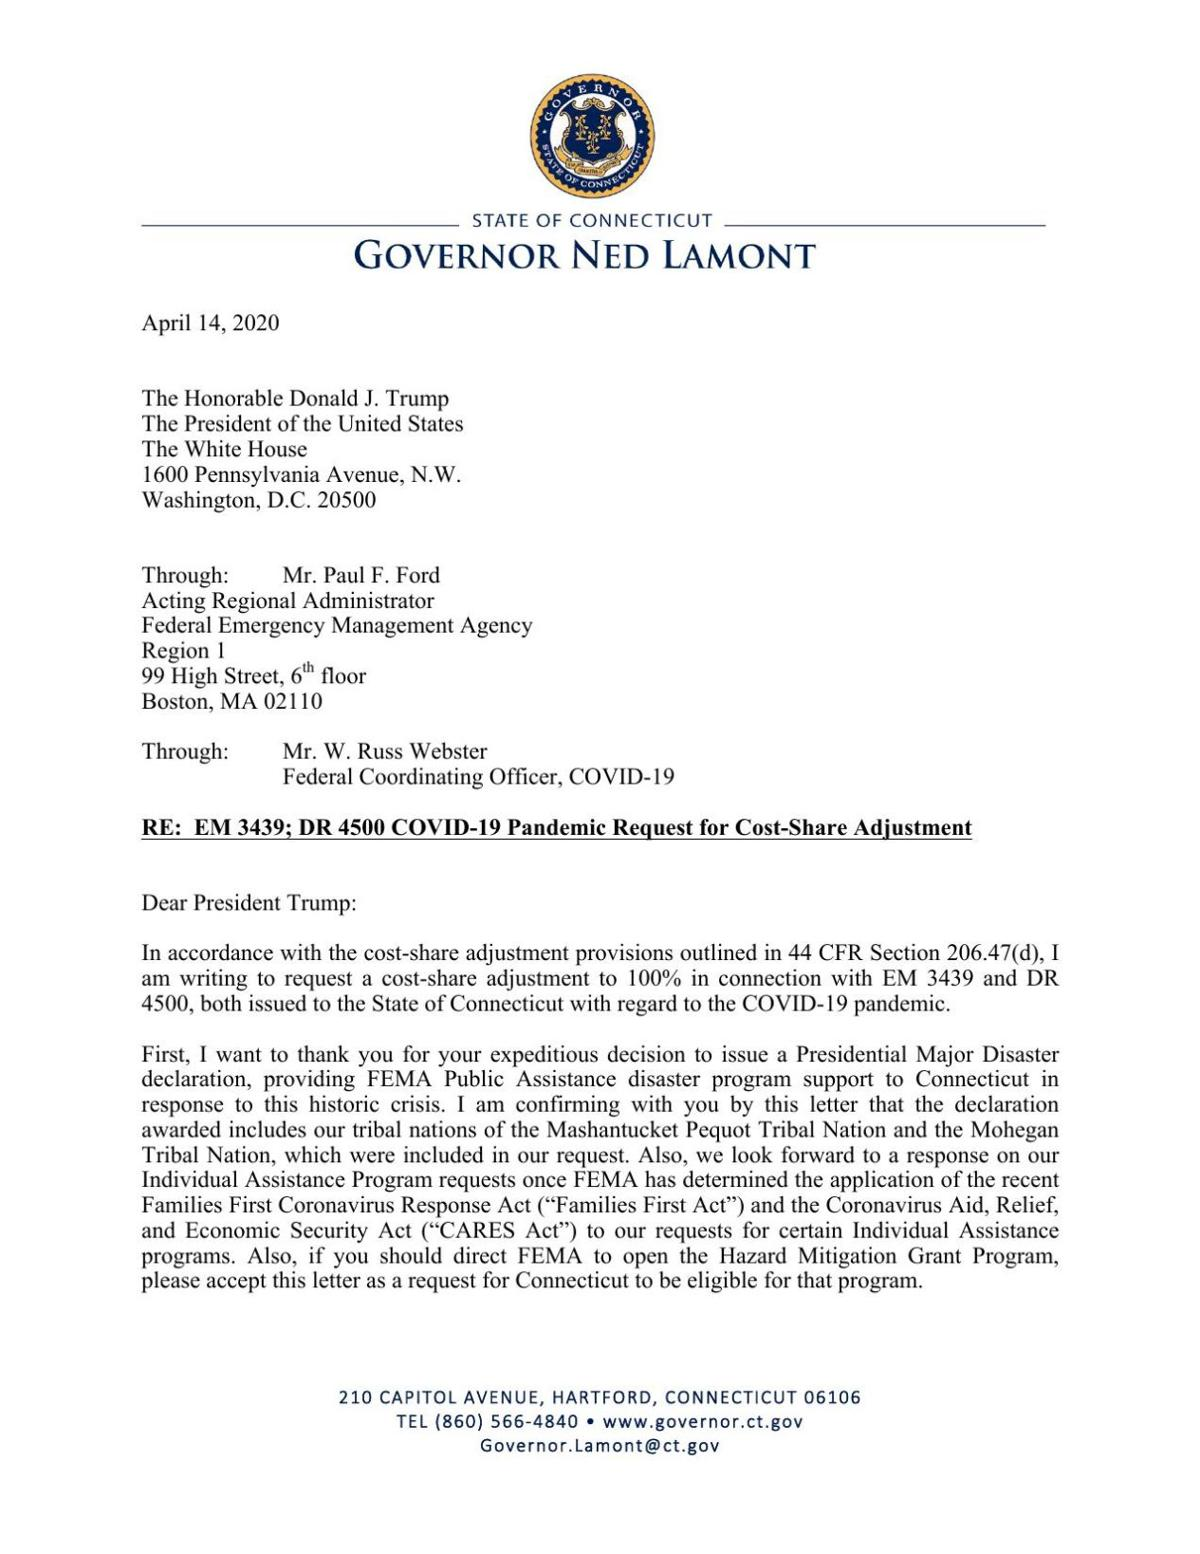 Gov. Lamont's supplemental request for aid